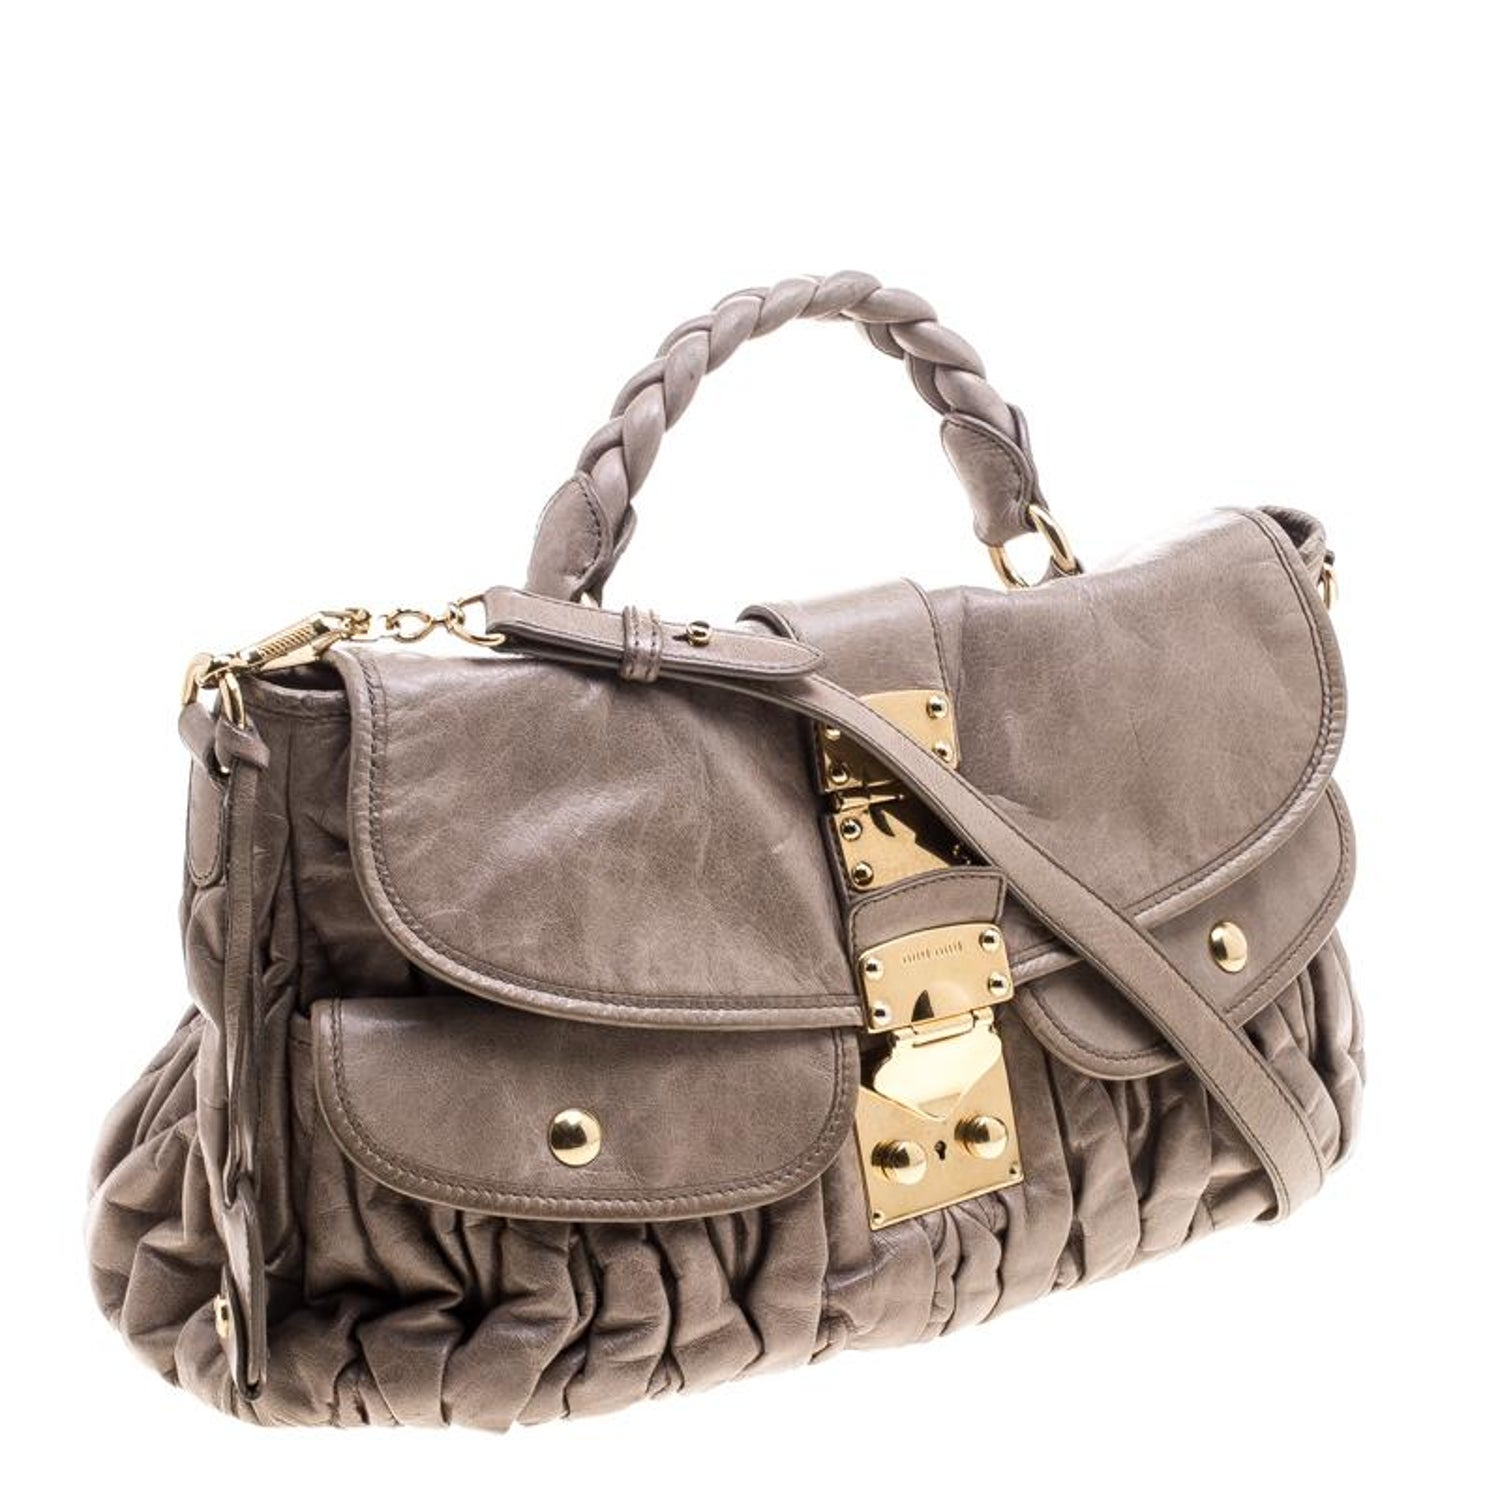 ae0d1a205eed Miu Miu Beige Matelasse Lux Leather Coffer Hobo For Sale at 1stdibs